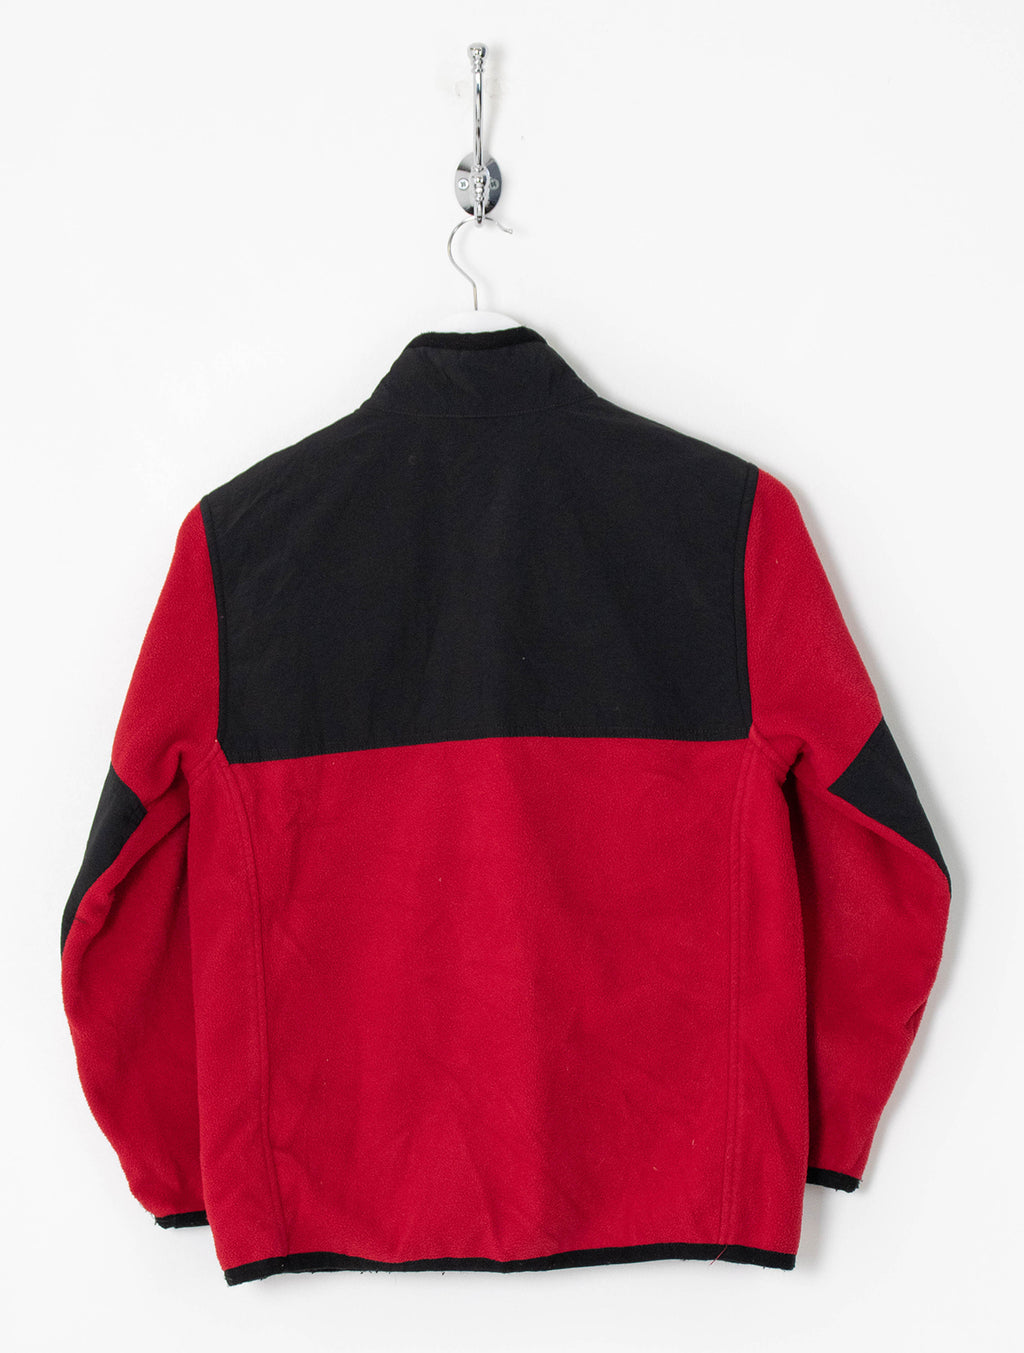 Women's Tommy Hilfiger Fleece (S)